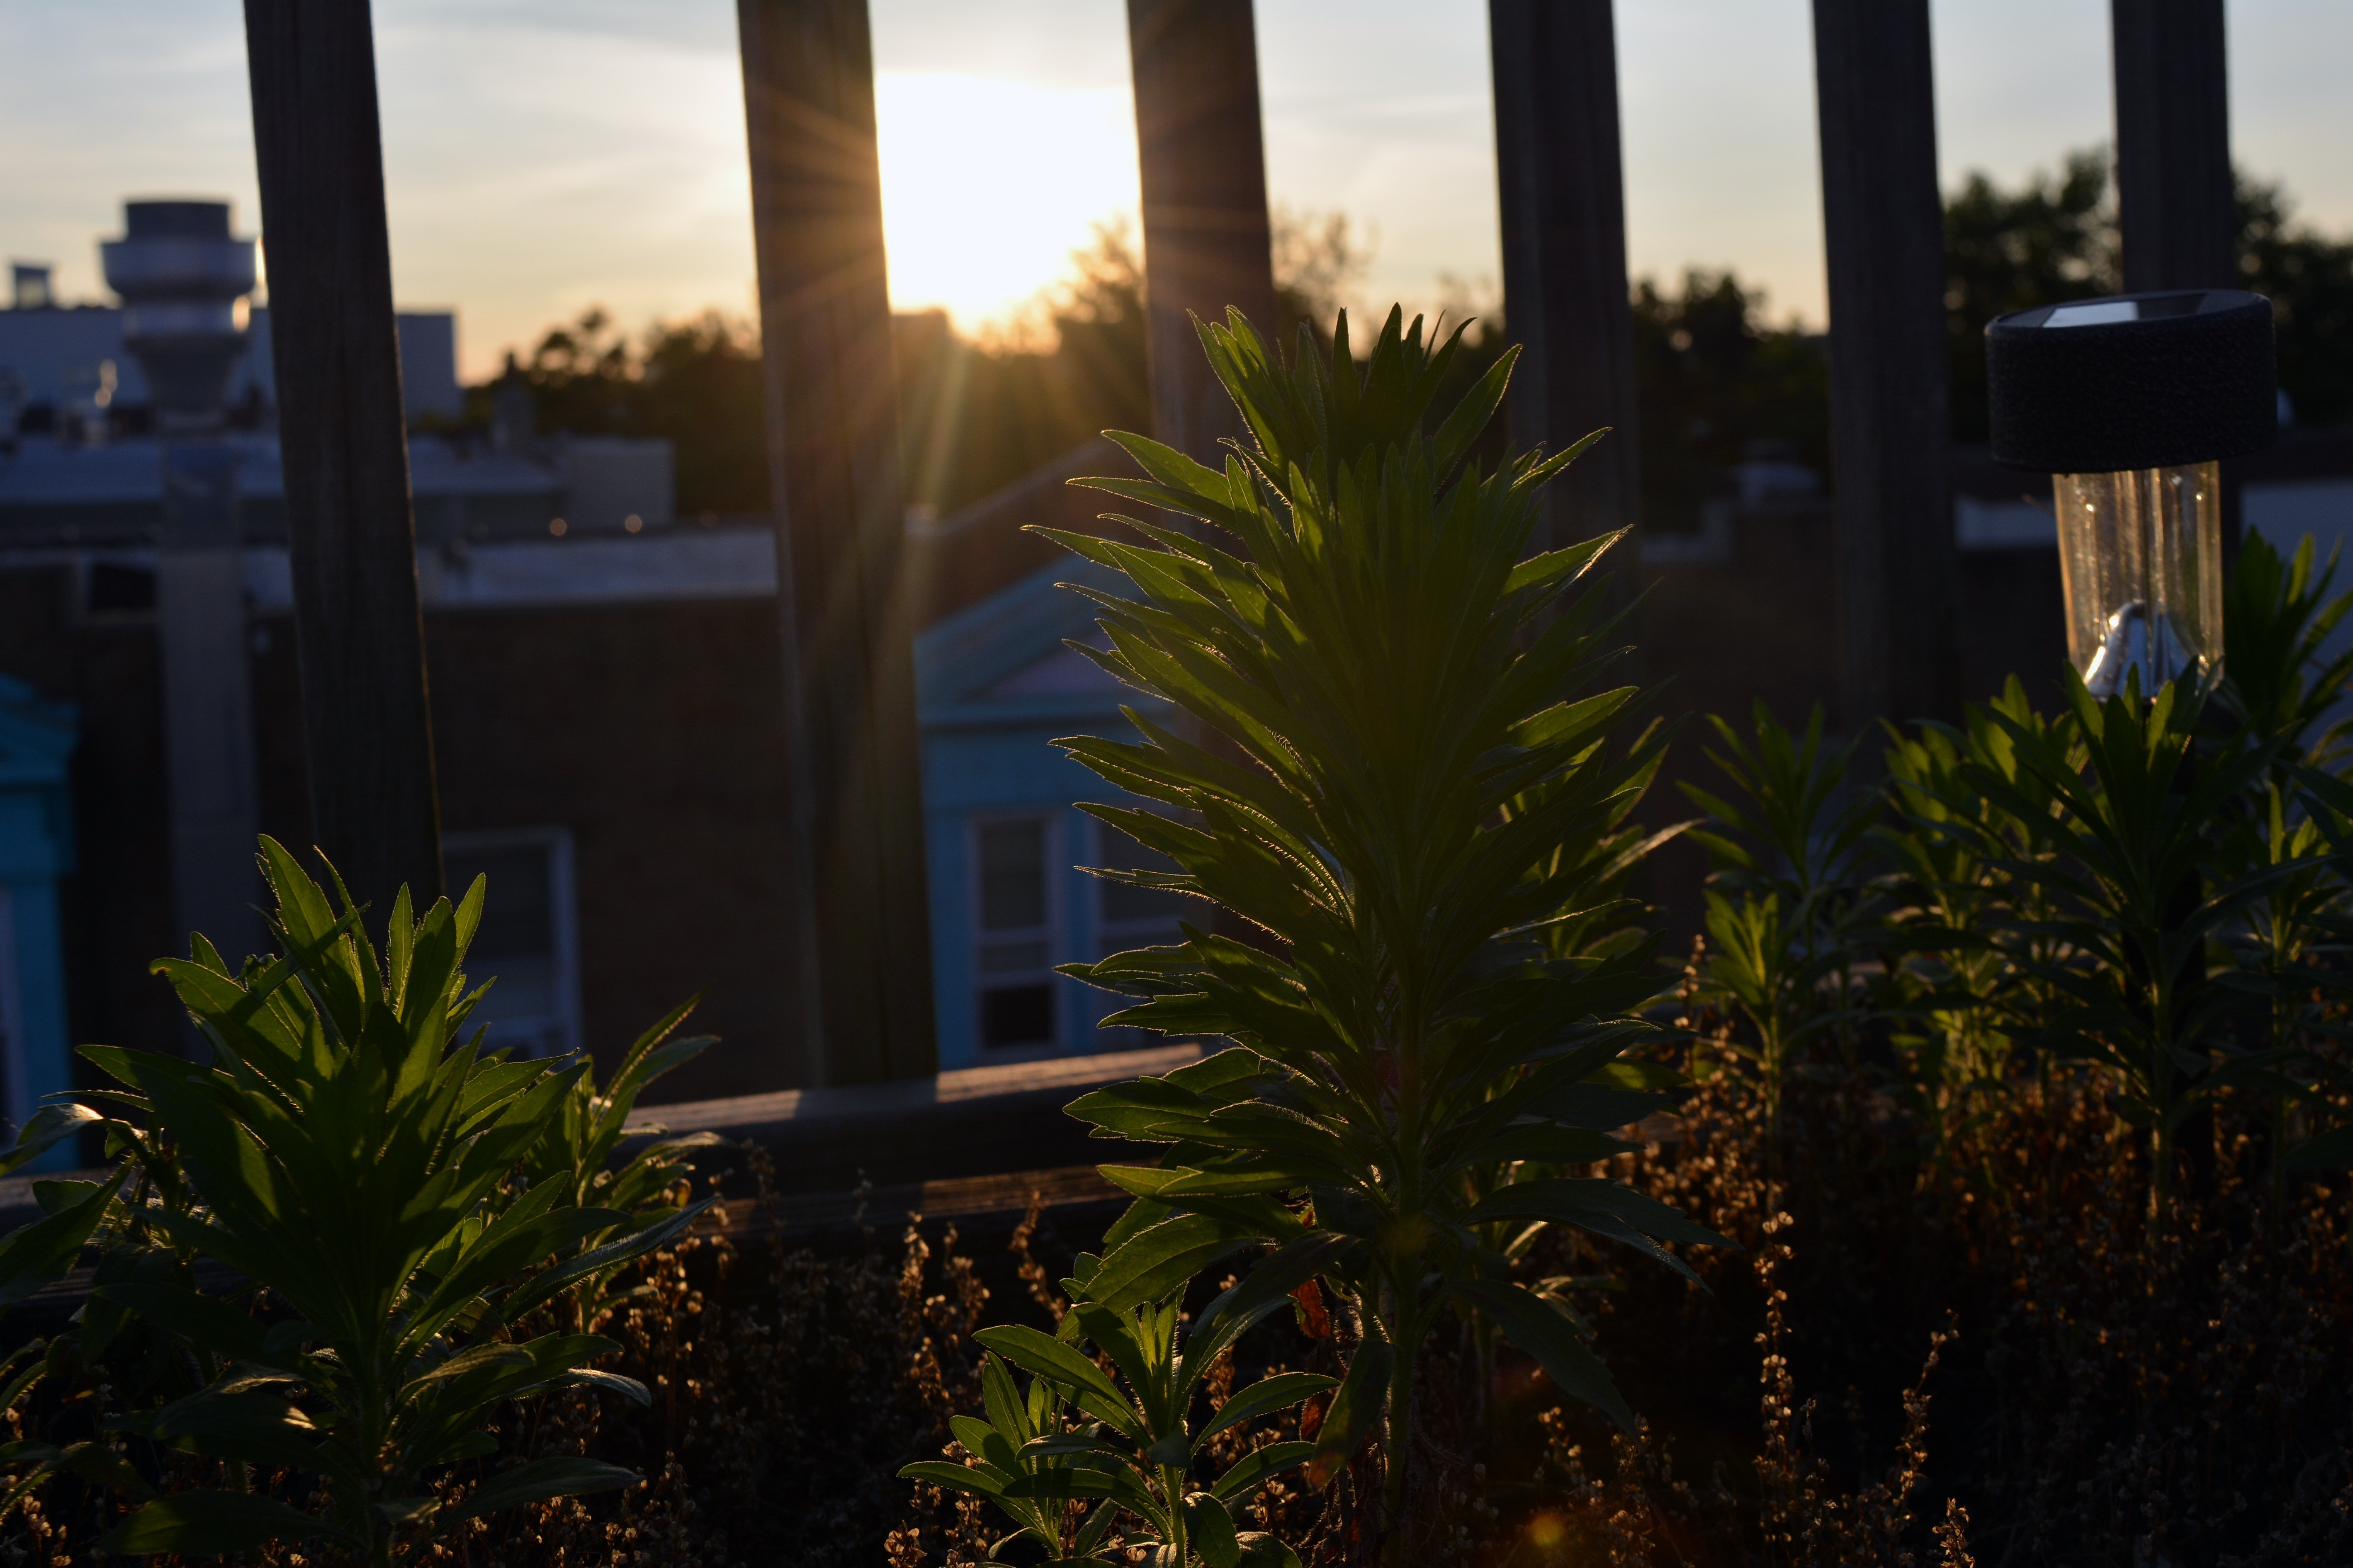 Plants with the sunset in the background